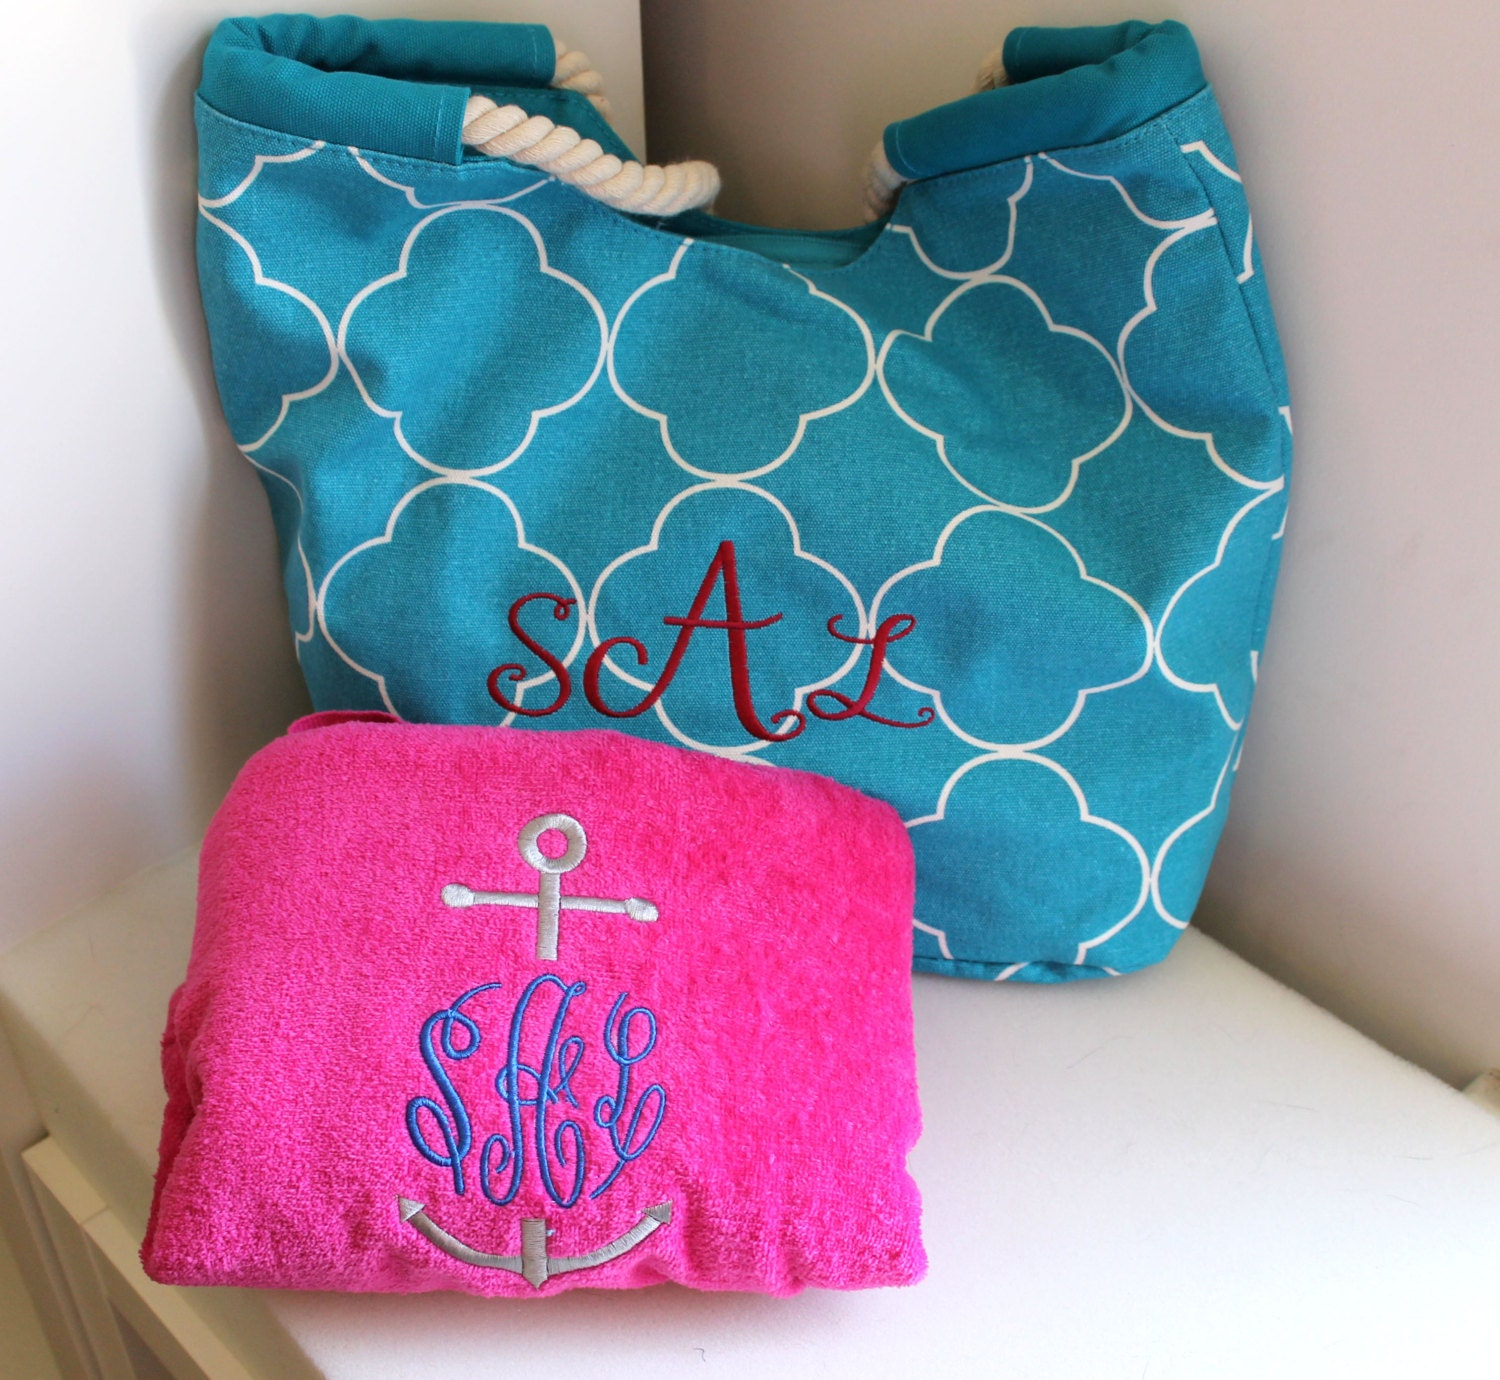 Personalized Towels: Personalized Tote And Towel Set/ Beach Bag & Beach Towel/